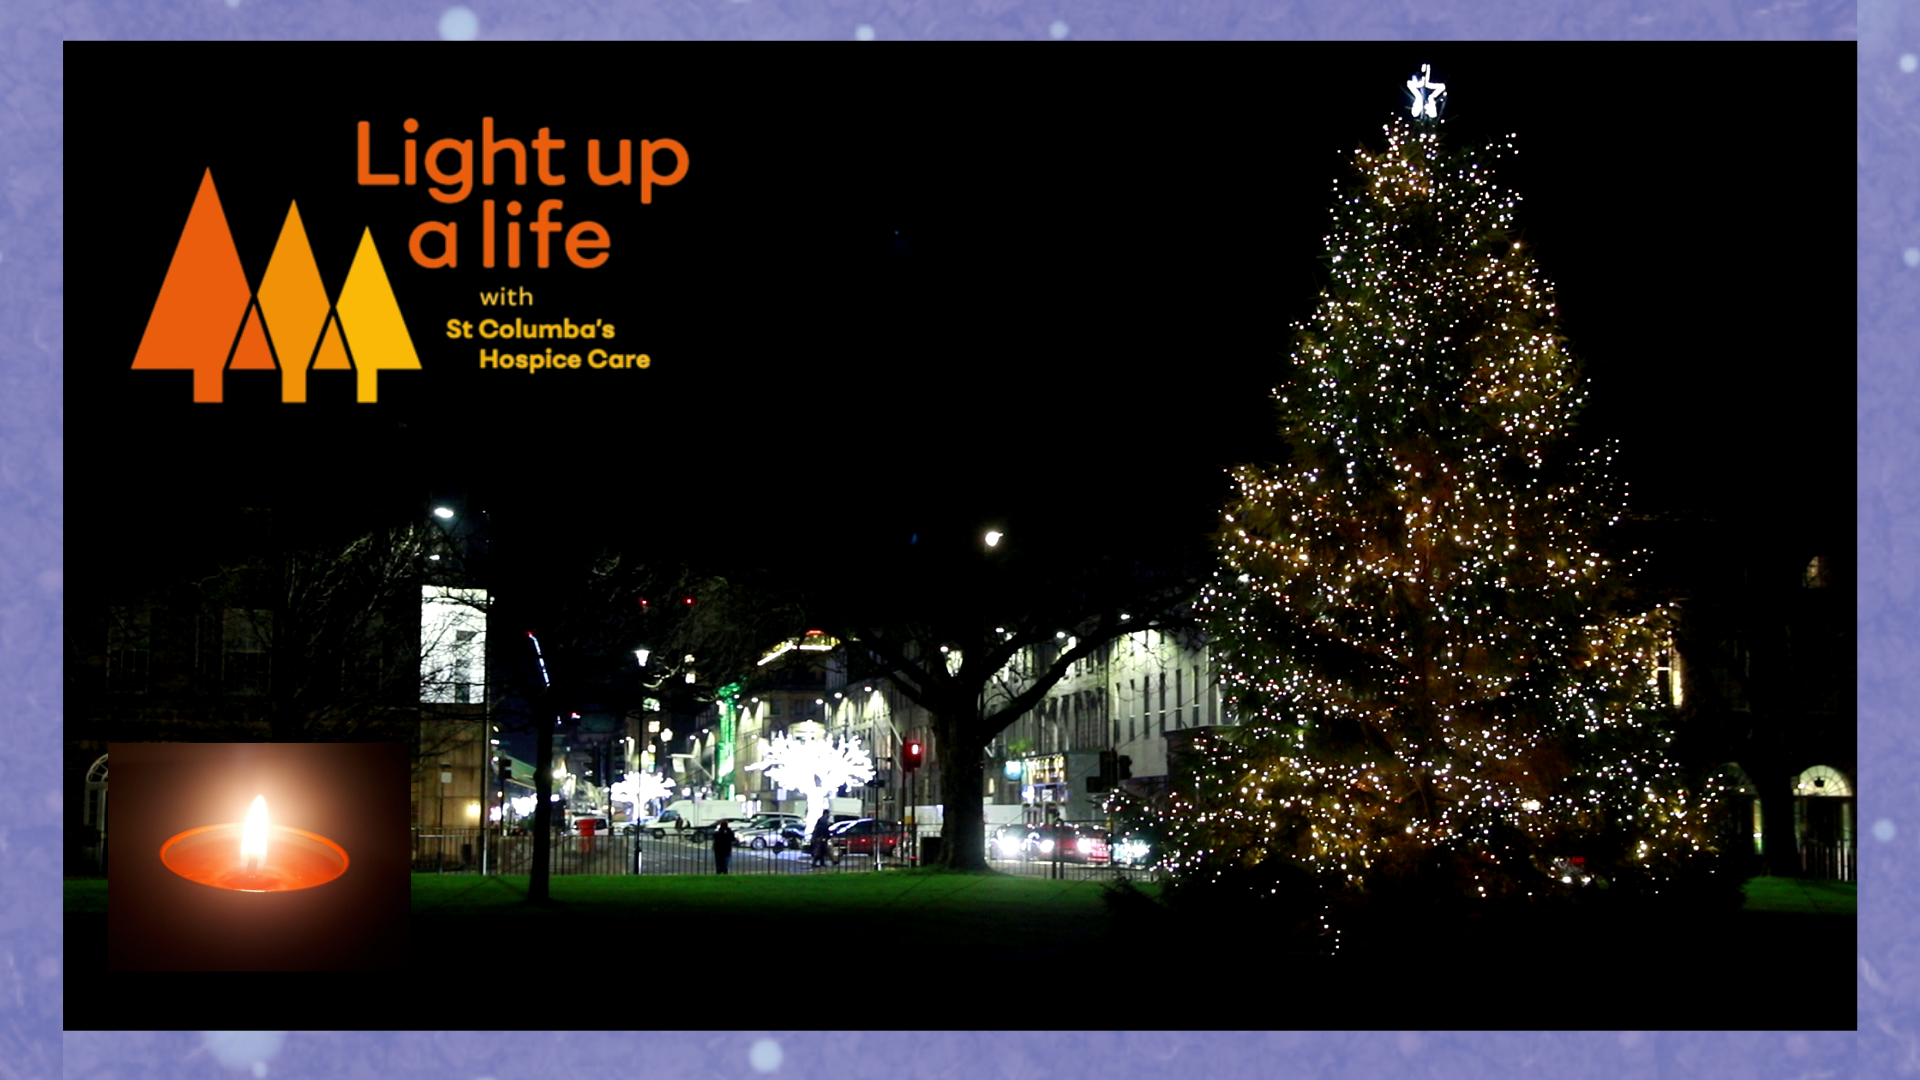 Light Up A Life 2020 Online Christmas Service image